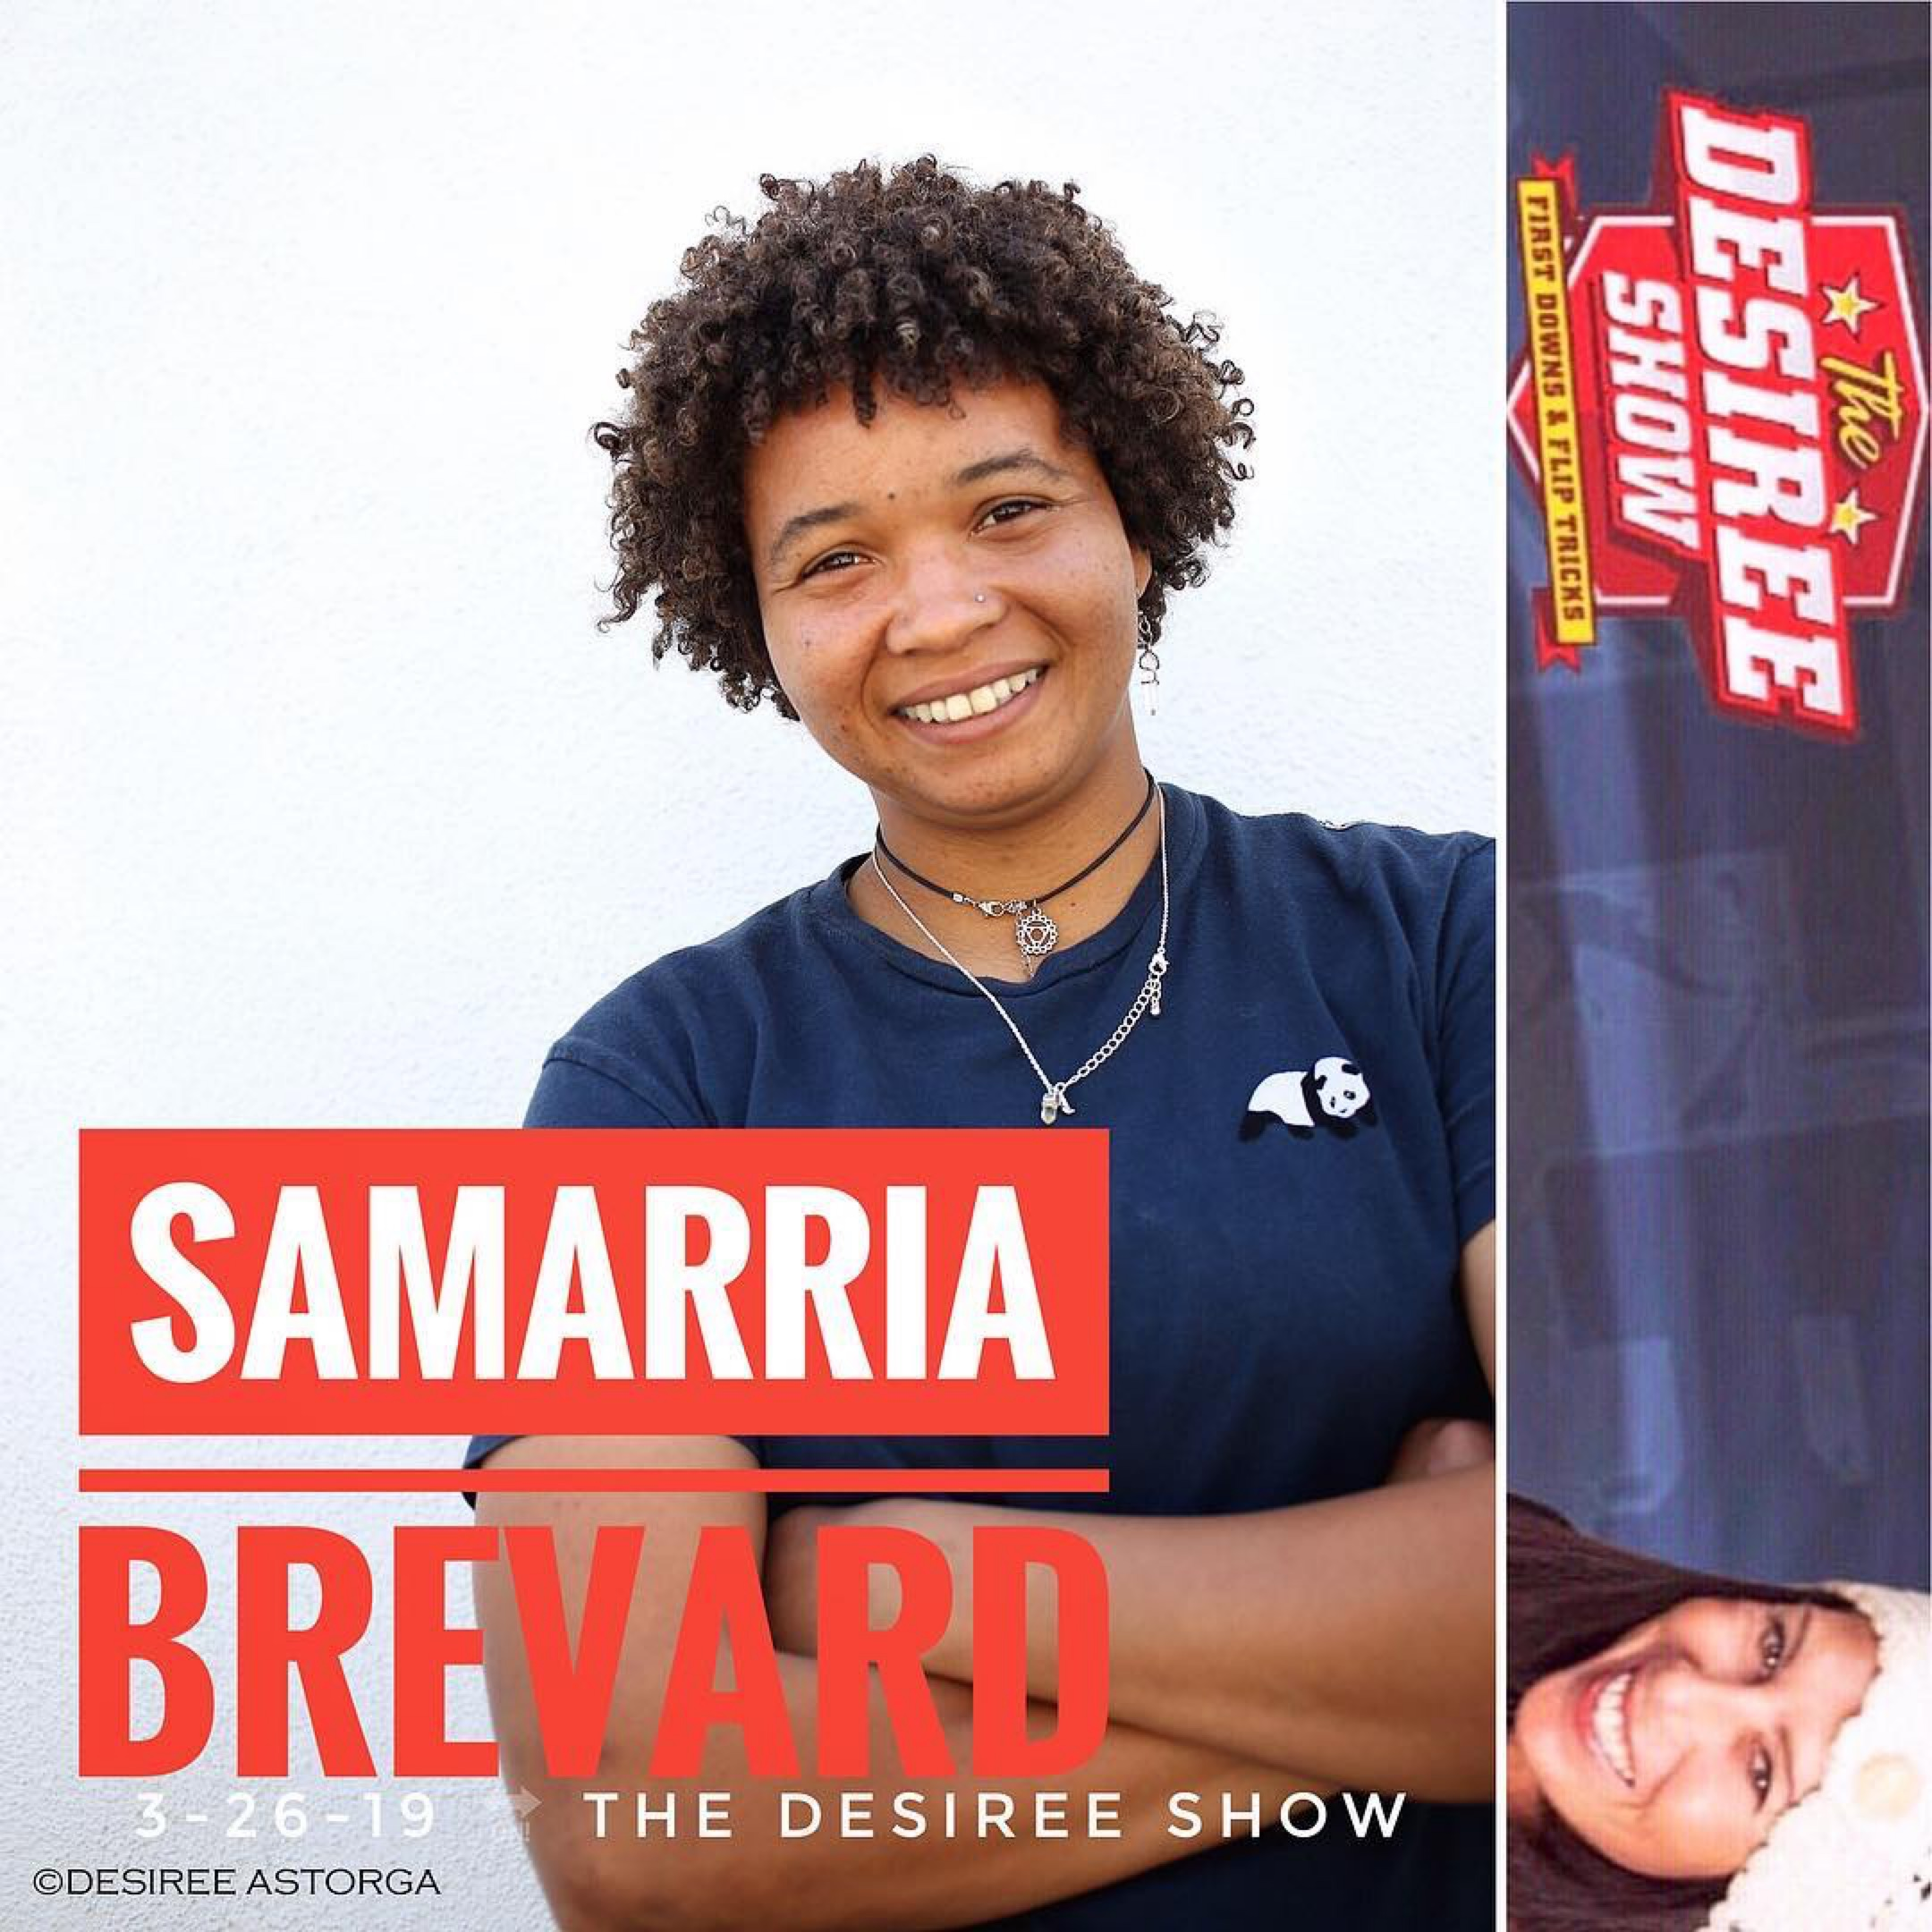 The Desiree Show - Samarria Brevard